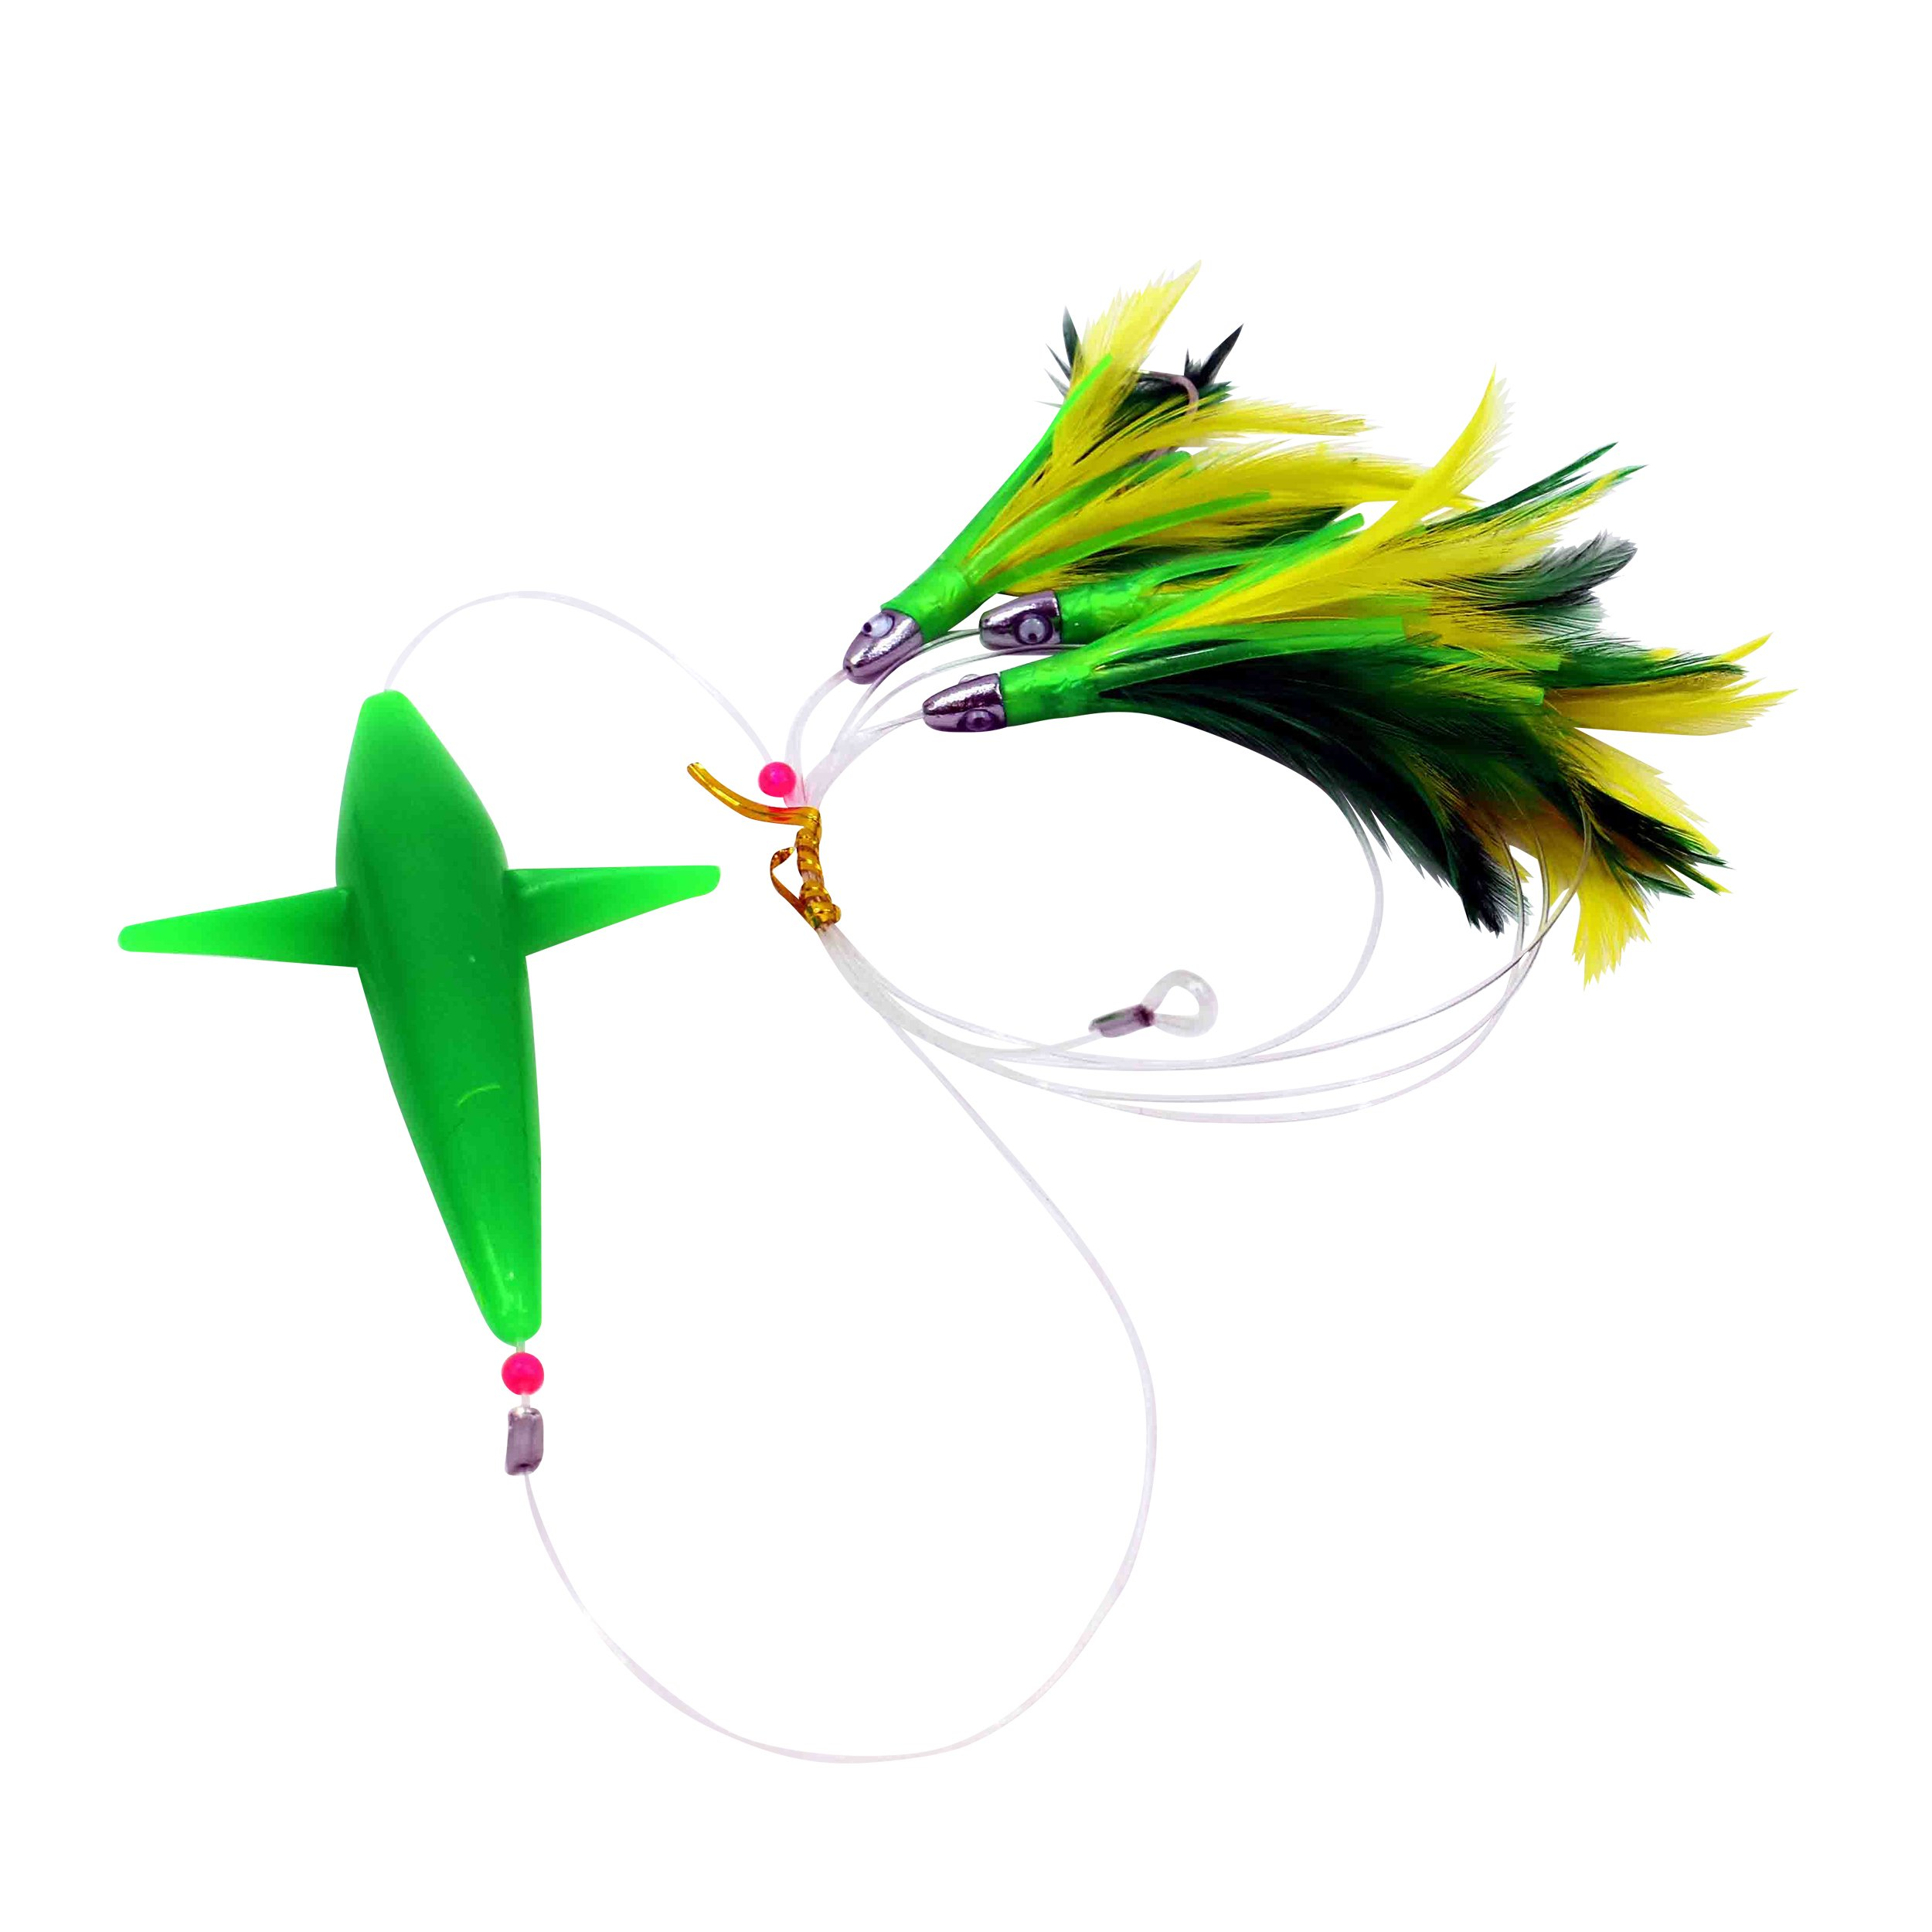 MagBay Lures Daisy Chain Teaser with Bird - Green Feather Teaser Rigged with Lure Bag by MagBay Lures